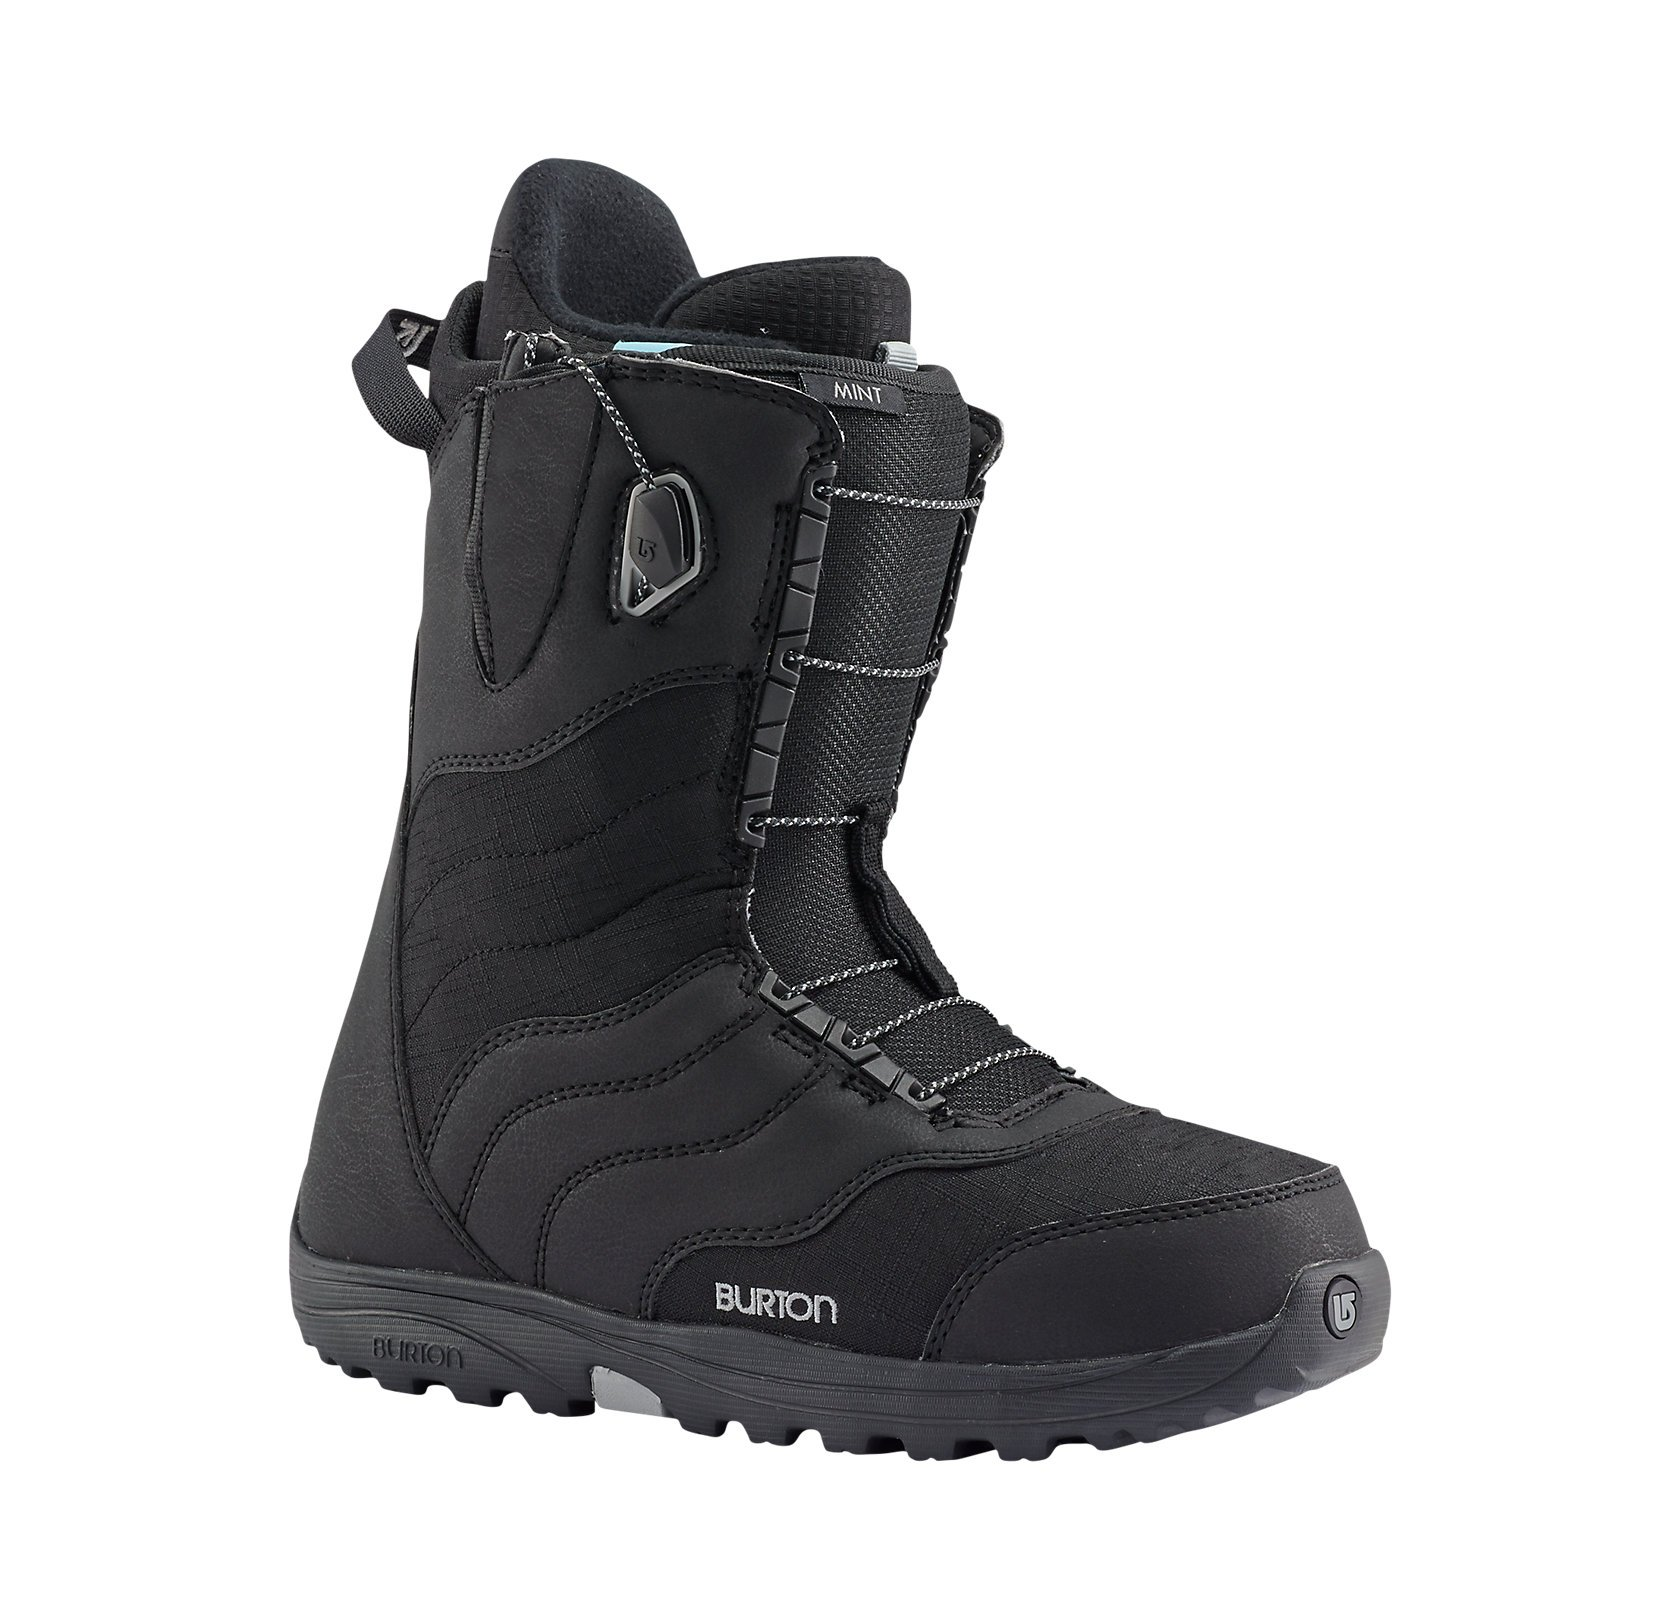 Burton Mint Snowboard Boot 2016 - Womens Black 6 by Burton